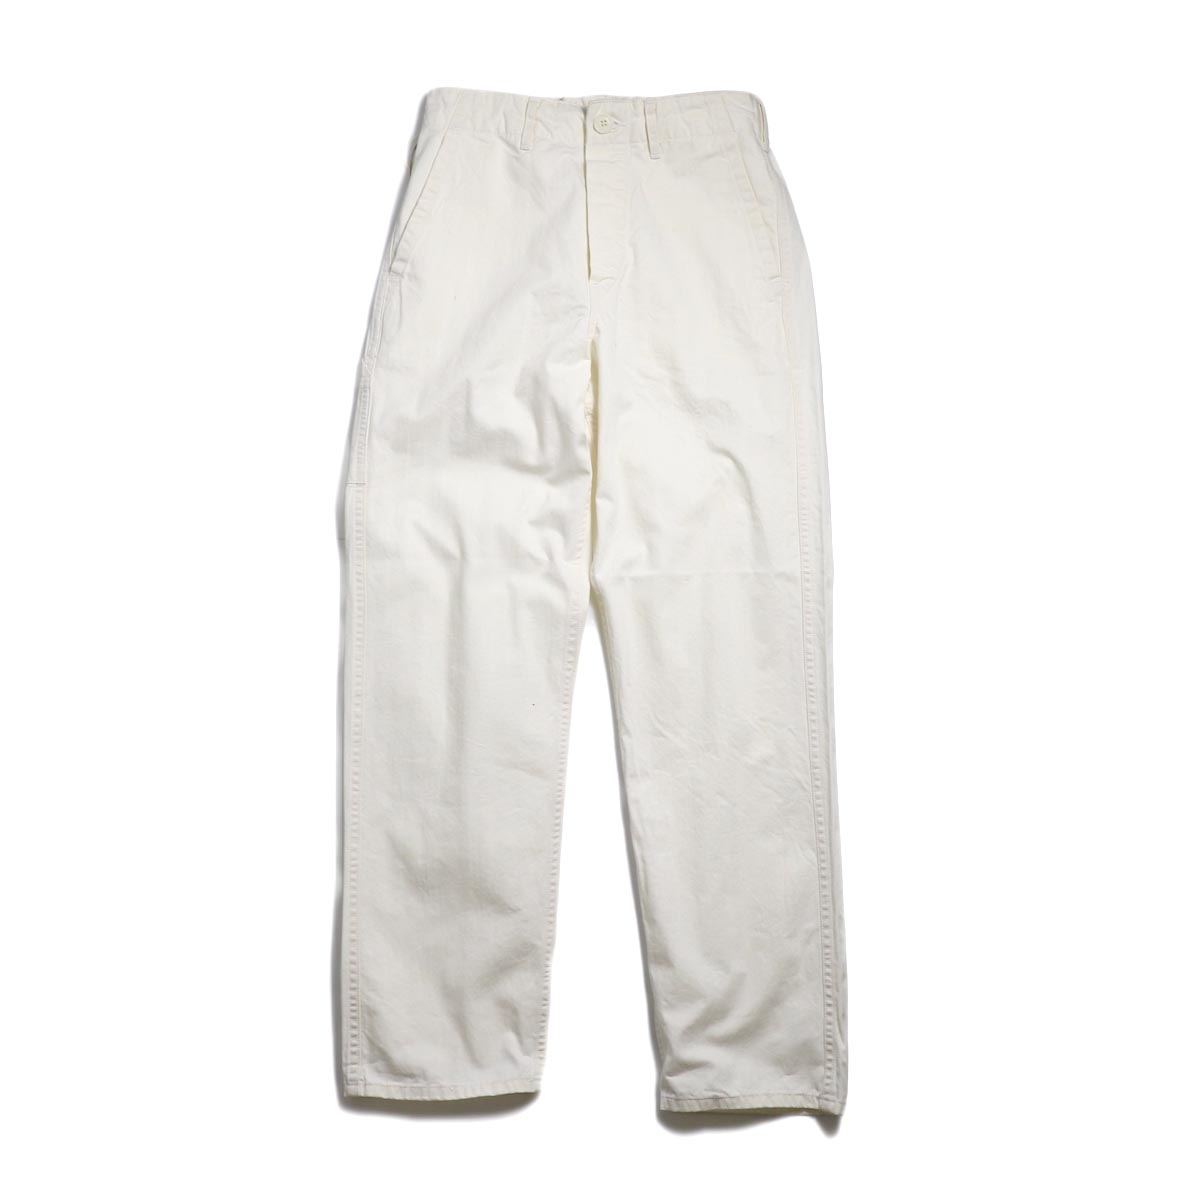 orSlow / French Work Pants -Ecru